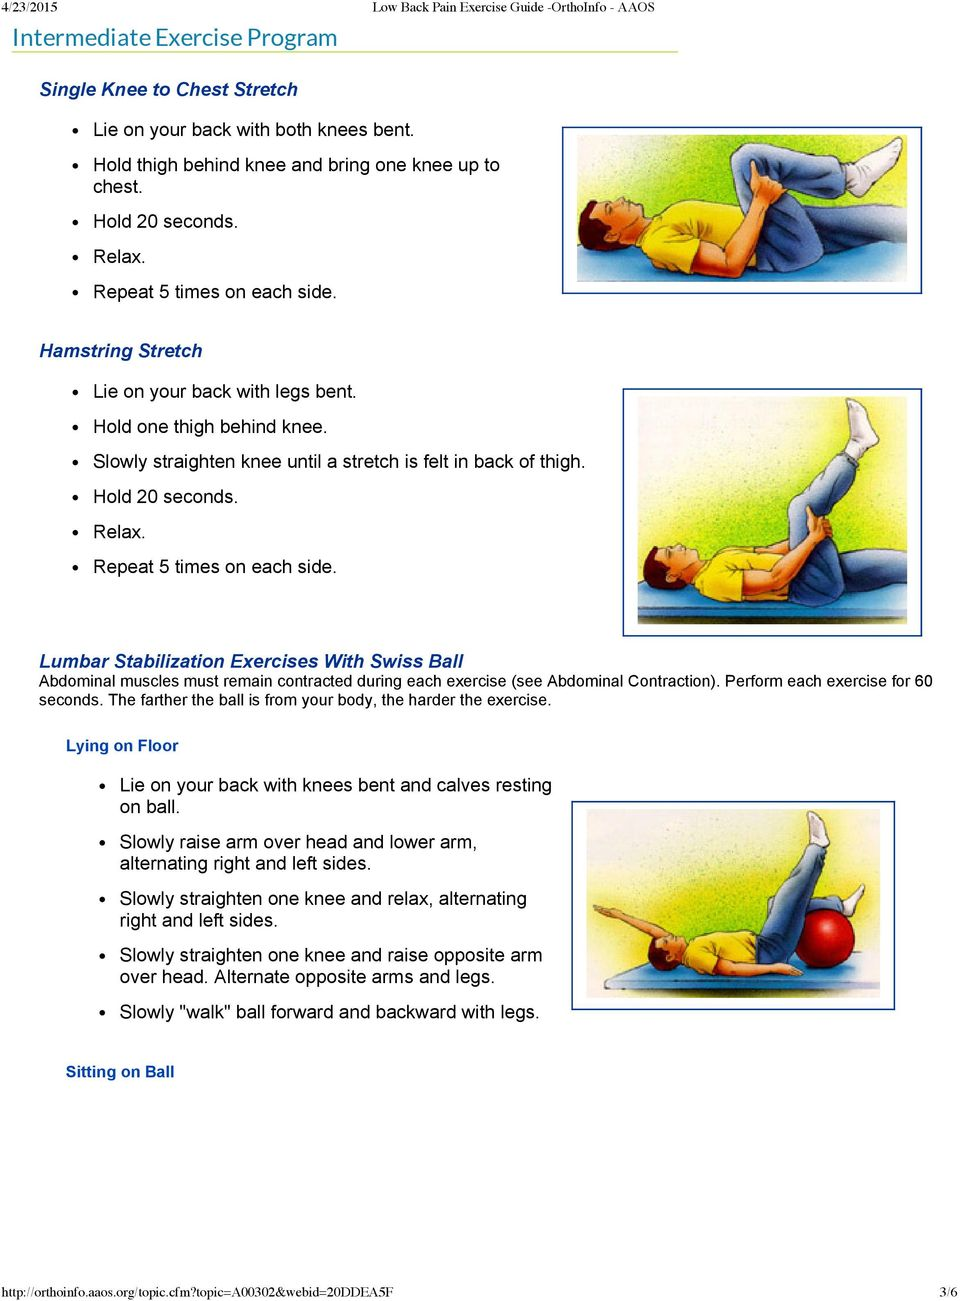 Lumbar Stabilization Exercises With Swiss Ball Abdominal muscles must remain contracted during each exercise (see Abdominal Contraction). Perform each exercise for 60 seconds.